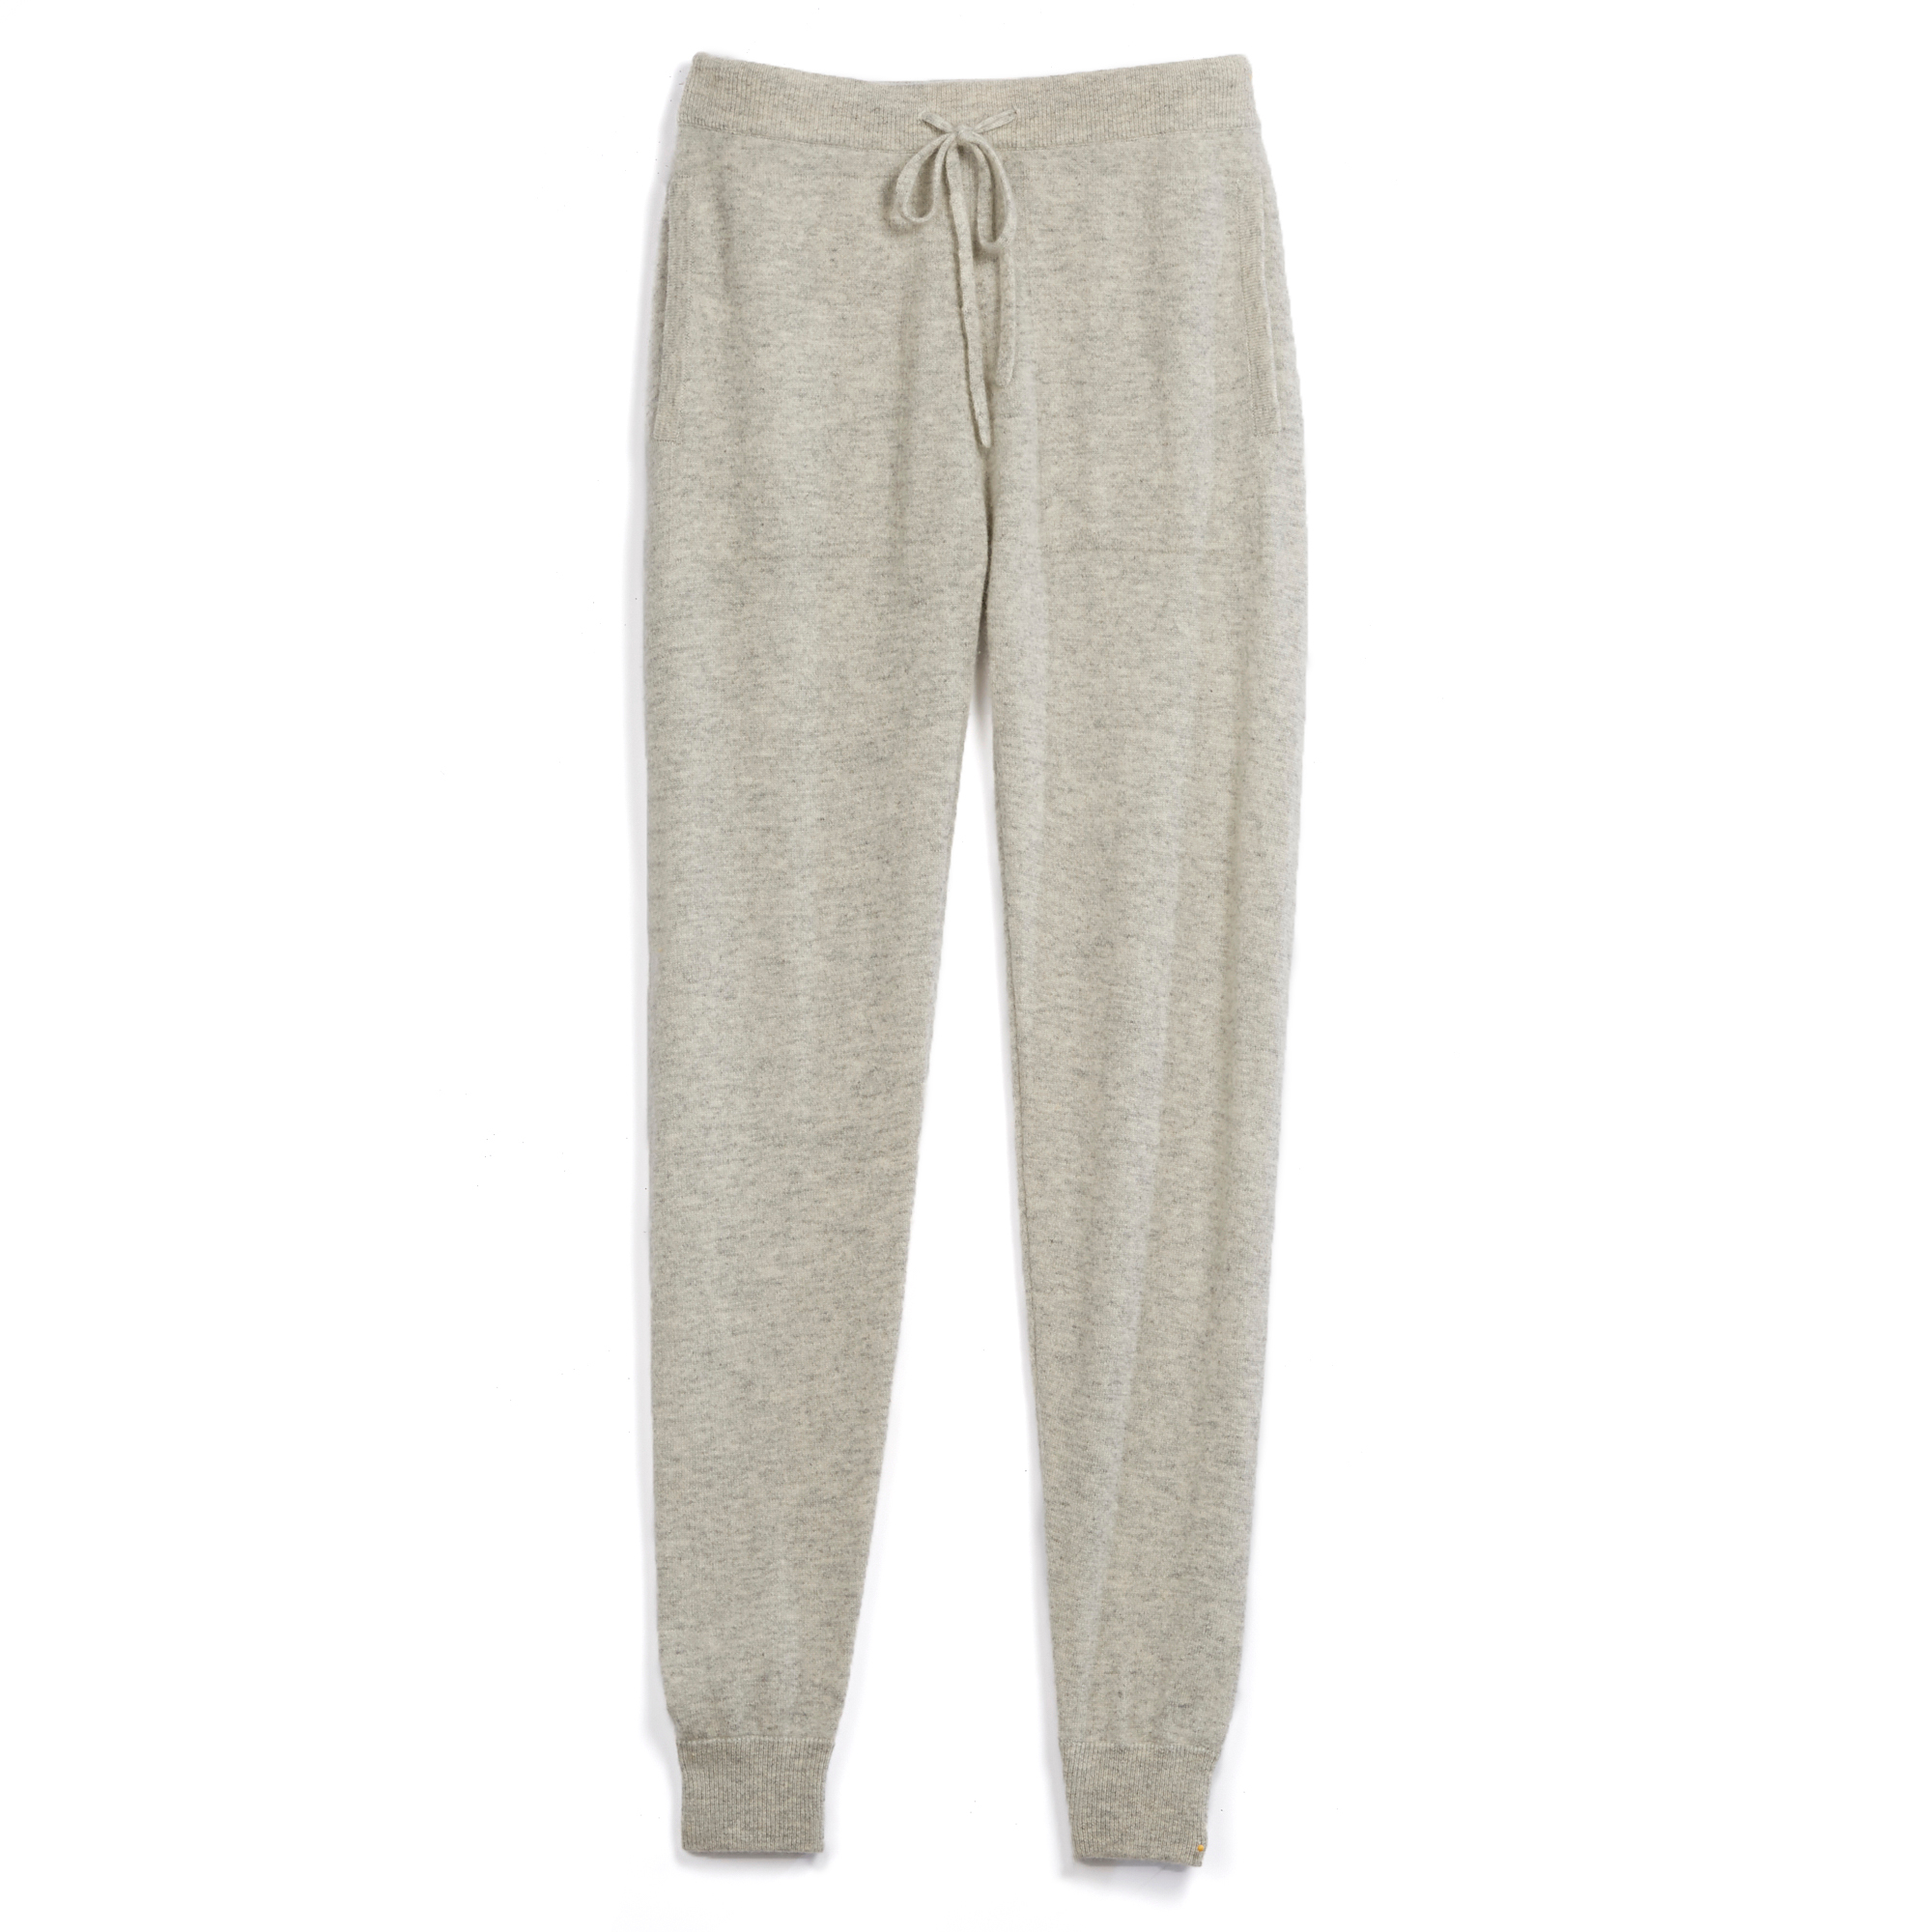 Bedhead Cashmere Joggers